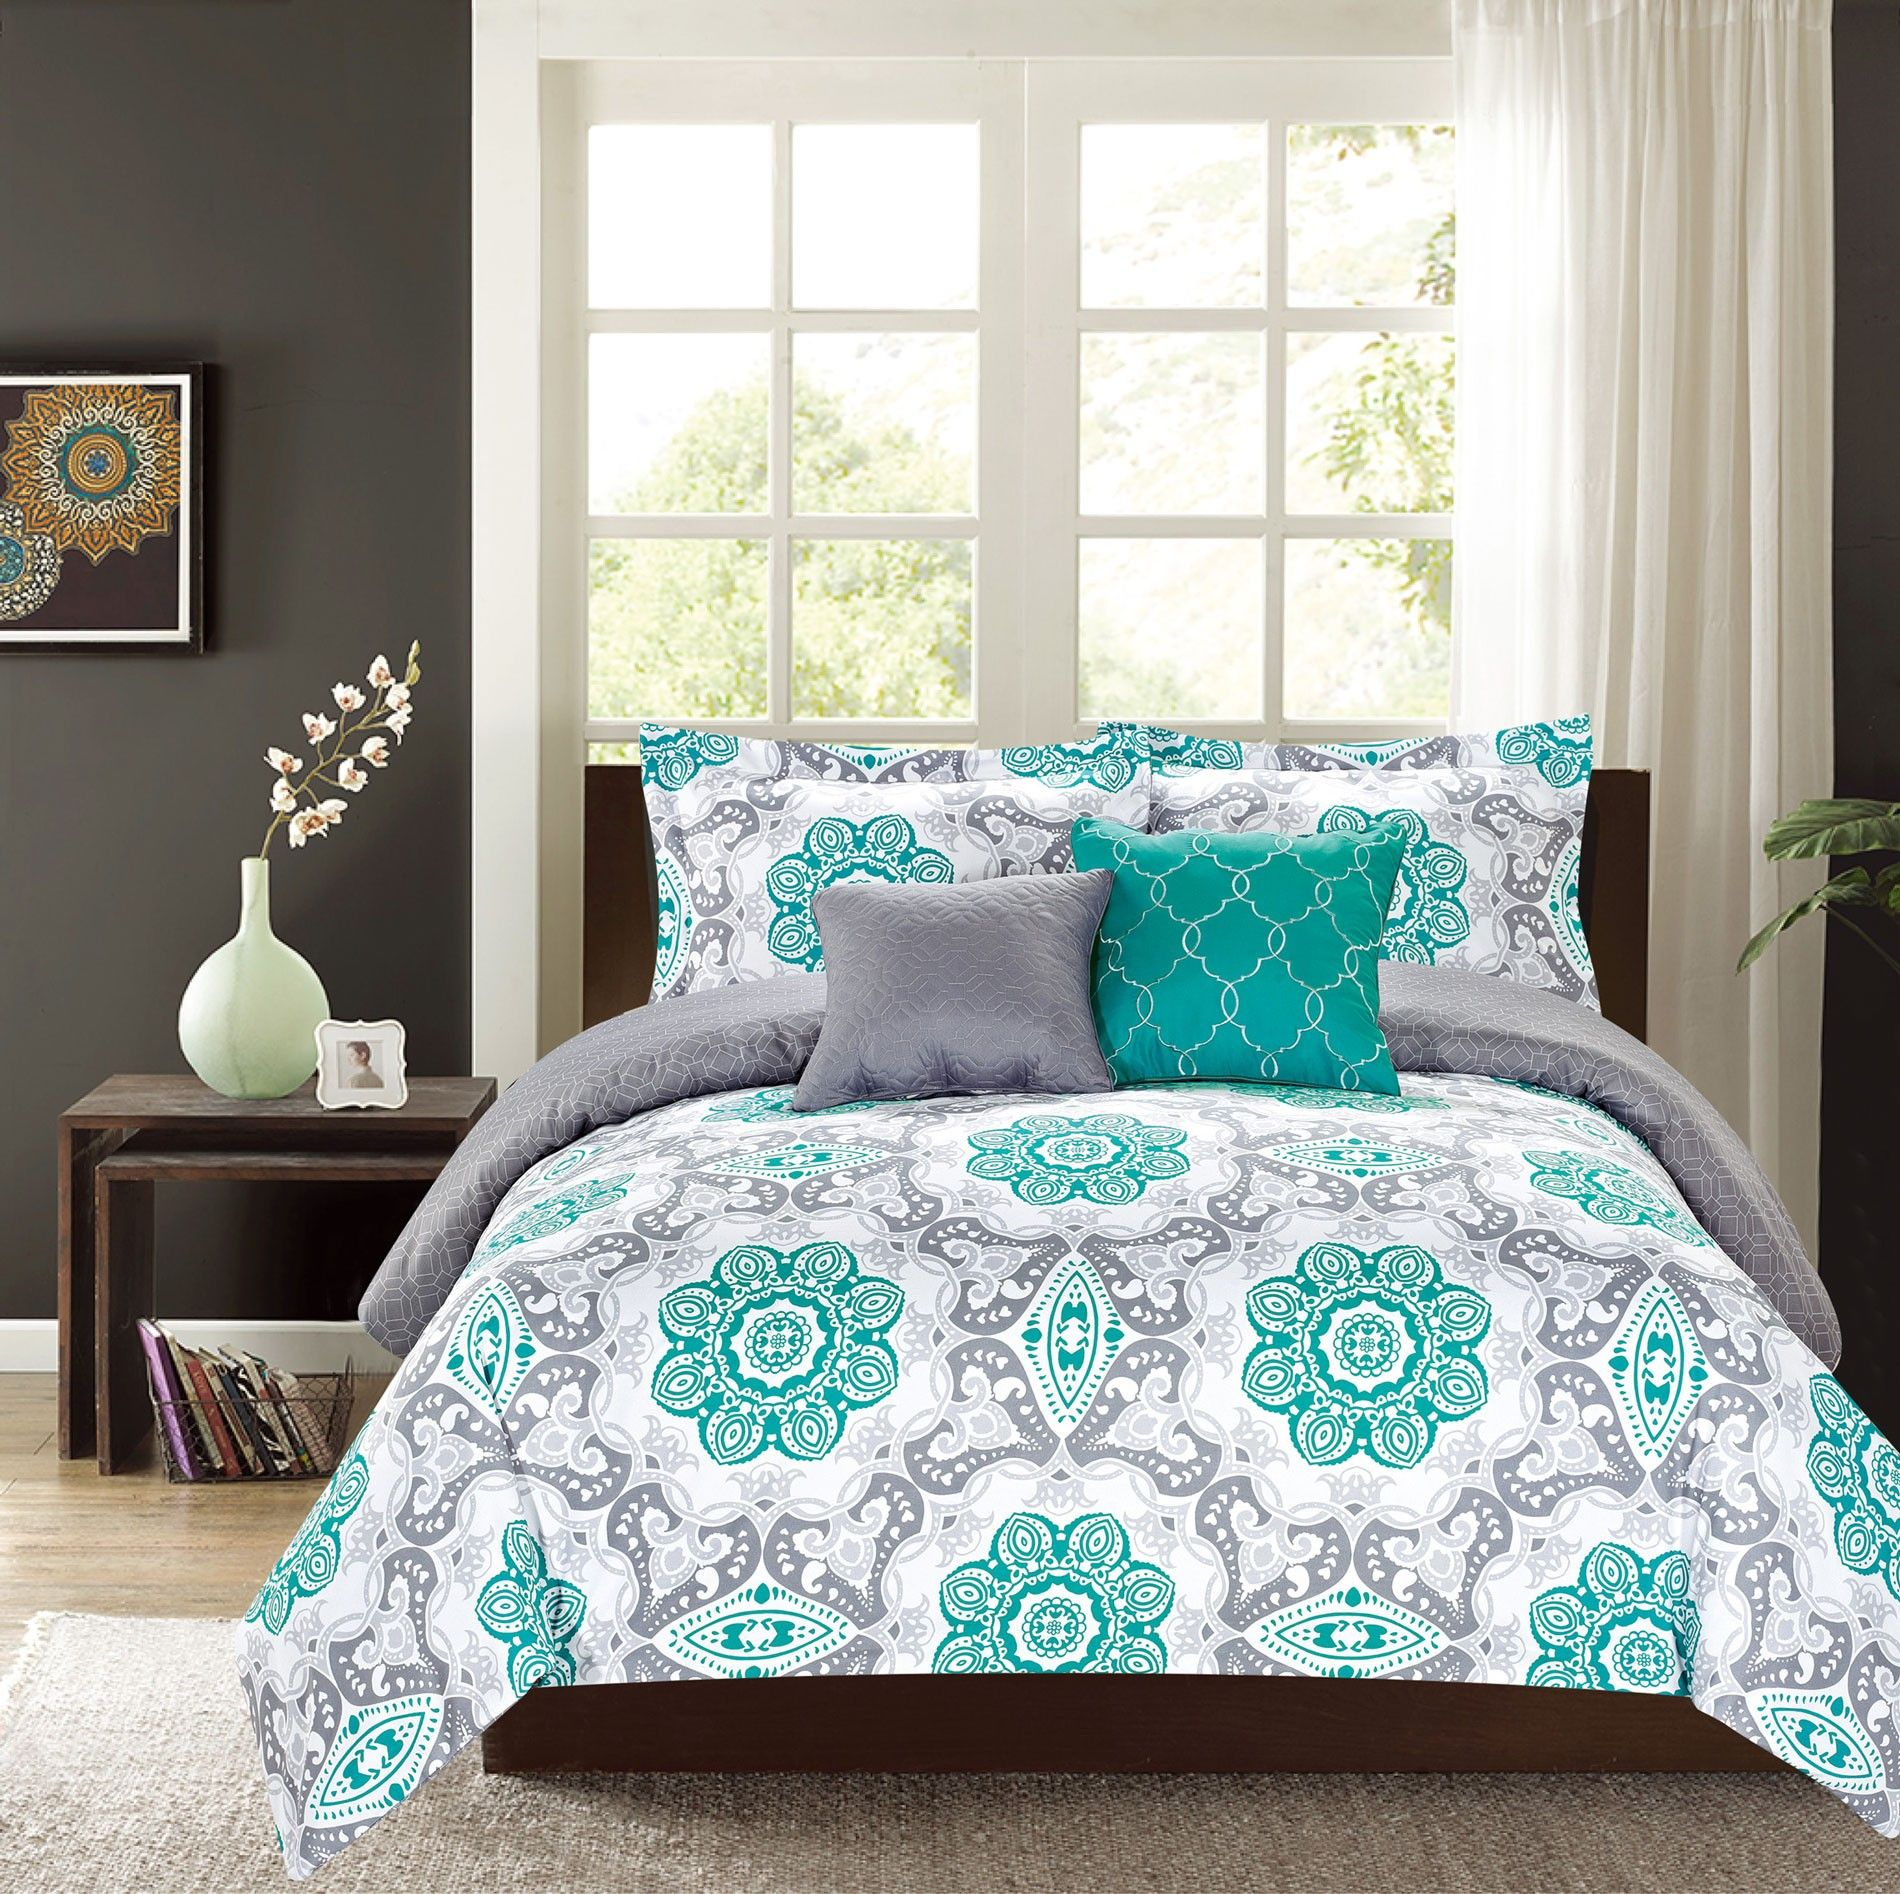 white comforter luxury bedroom sets size bedding info teal bed dark full black king u gray and with yakunina